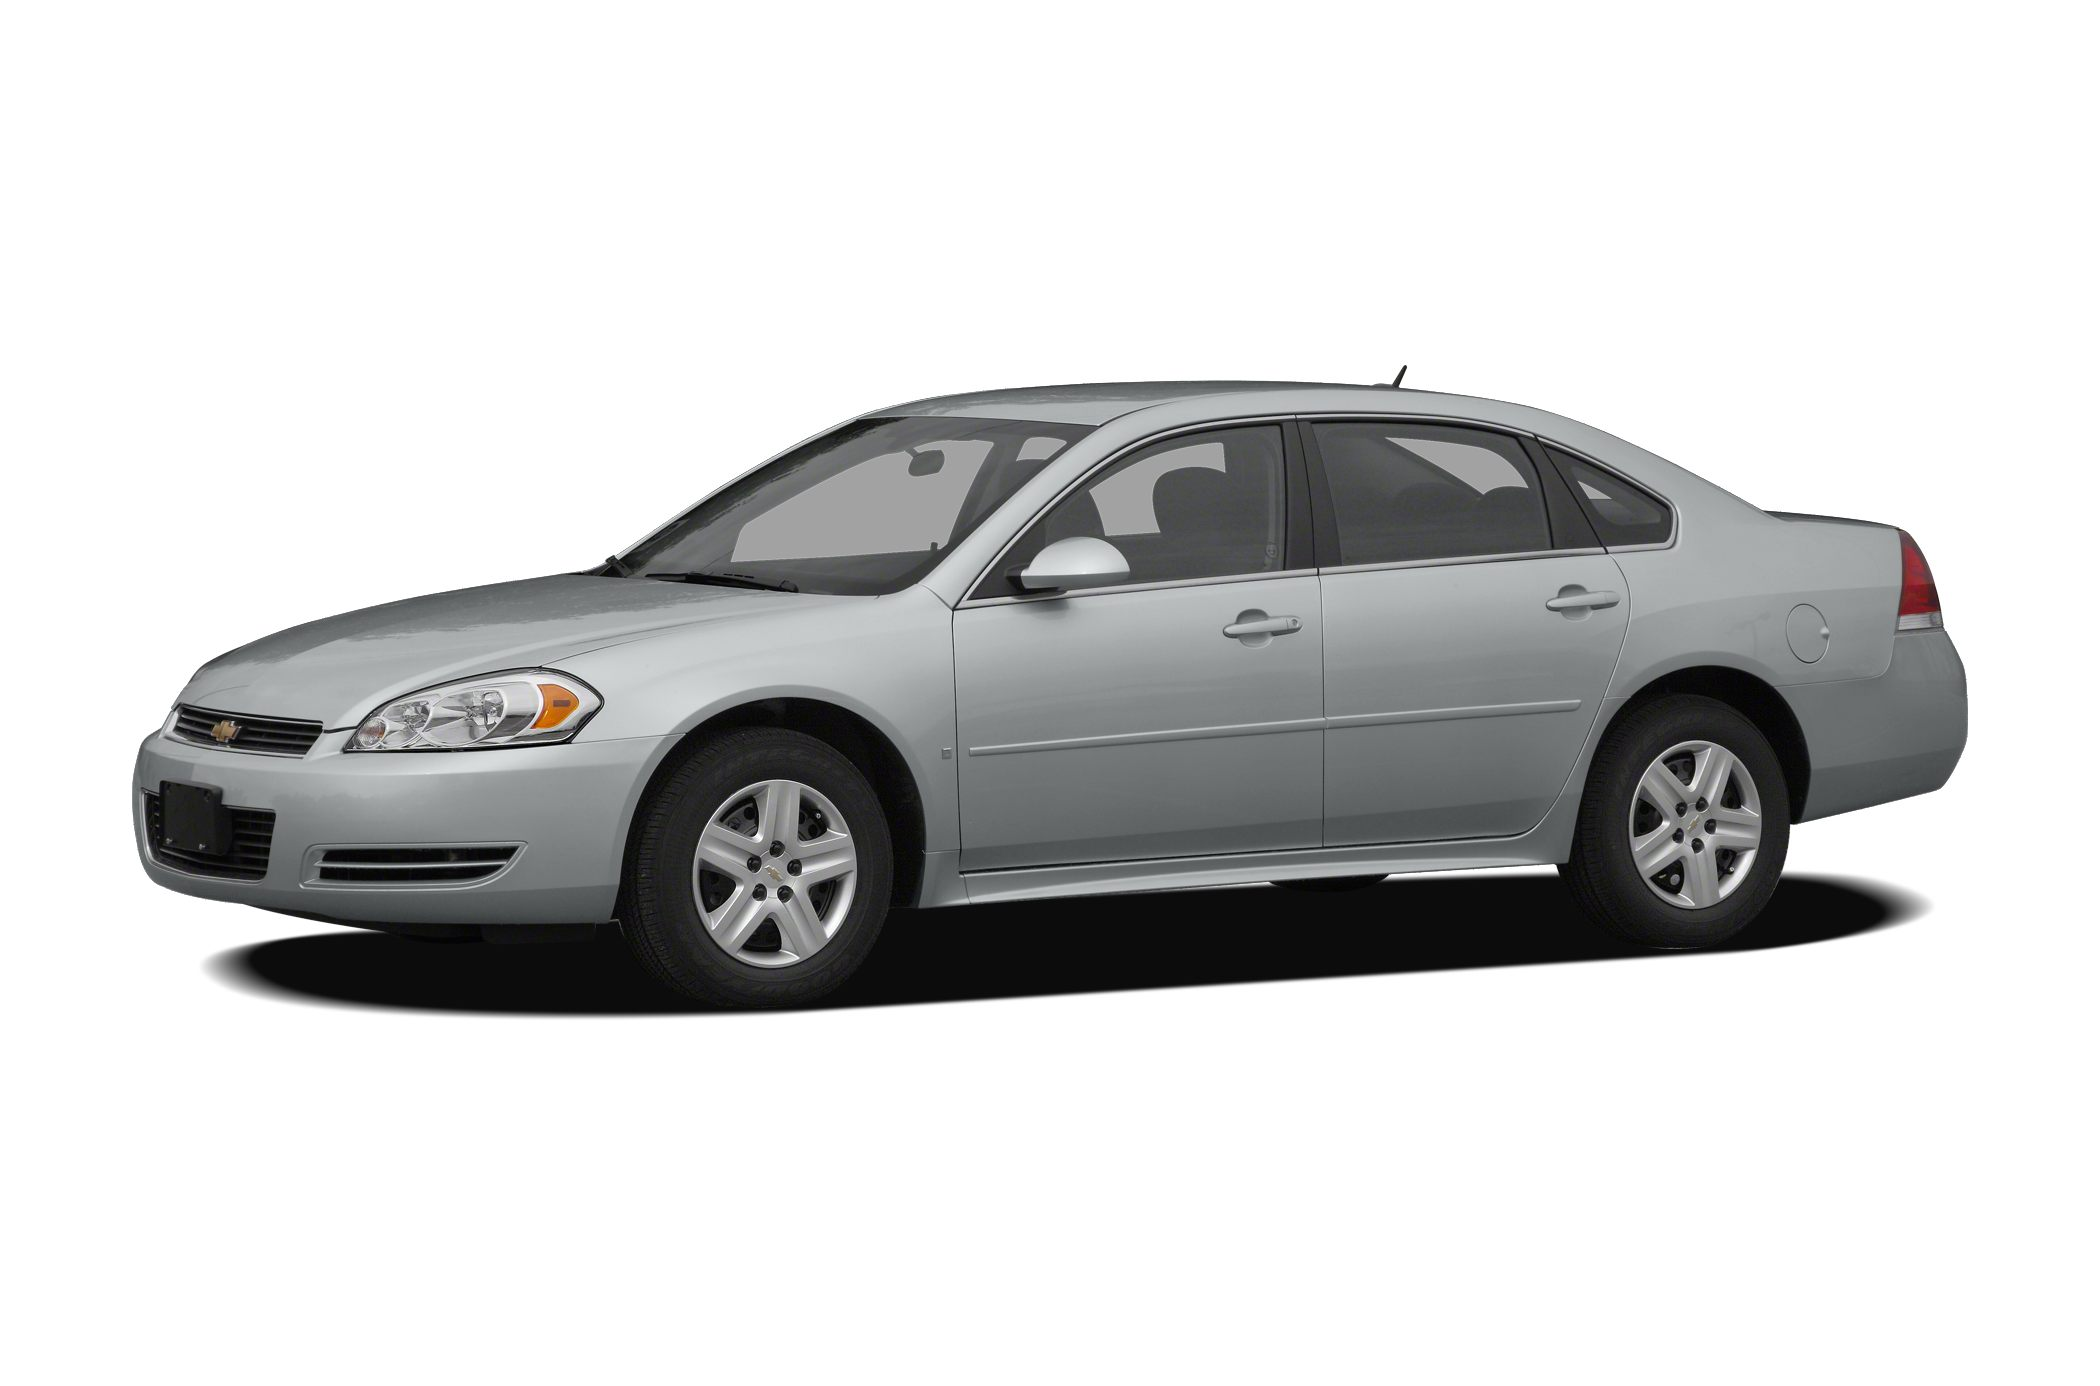 2011 Chevrolet Impala LT Westboro Toyota Right People Right Price Right Now - You asked and we